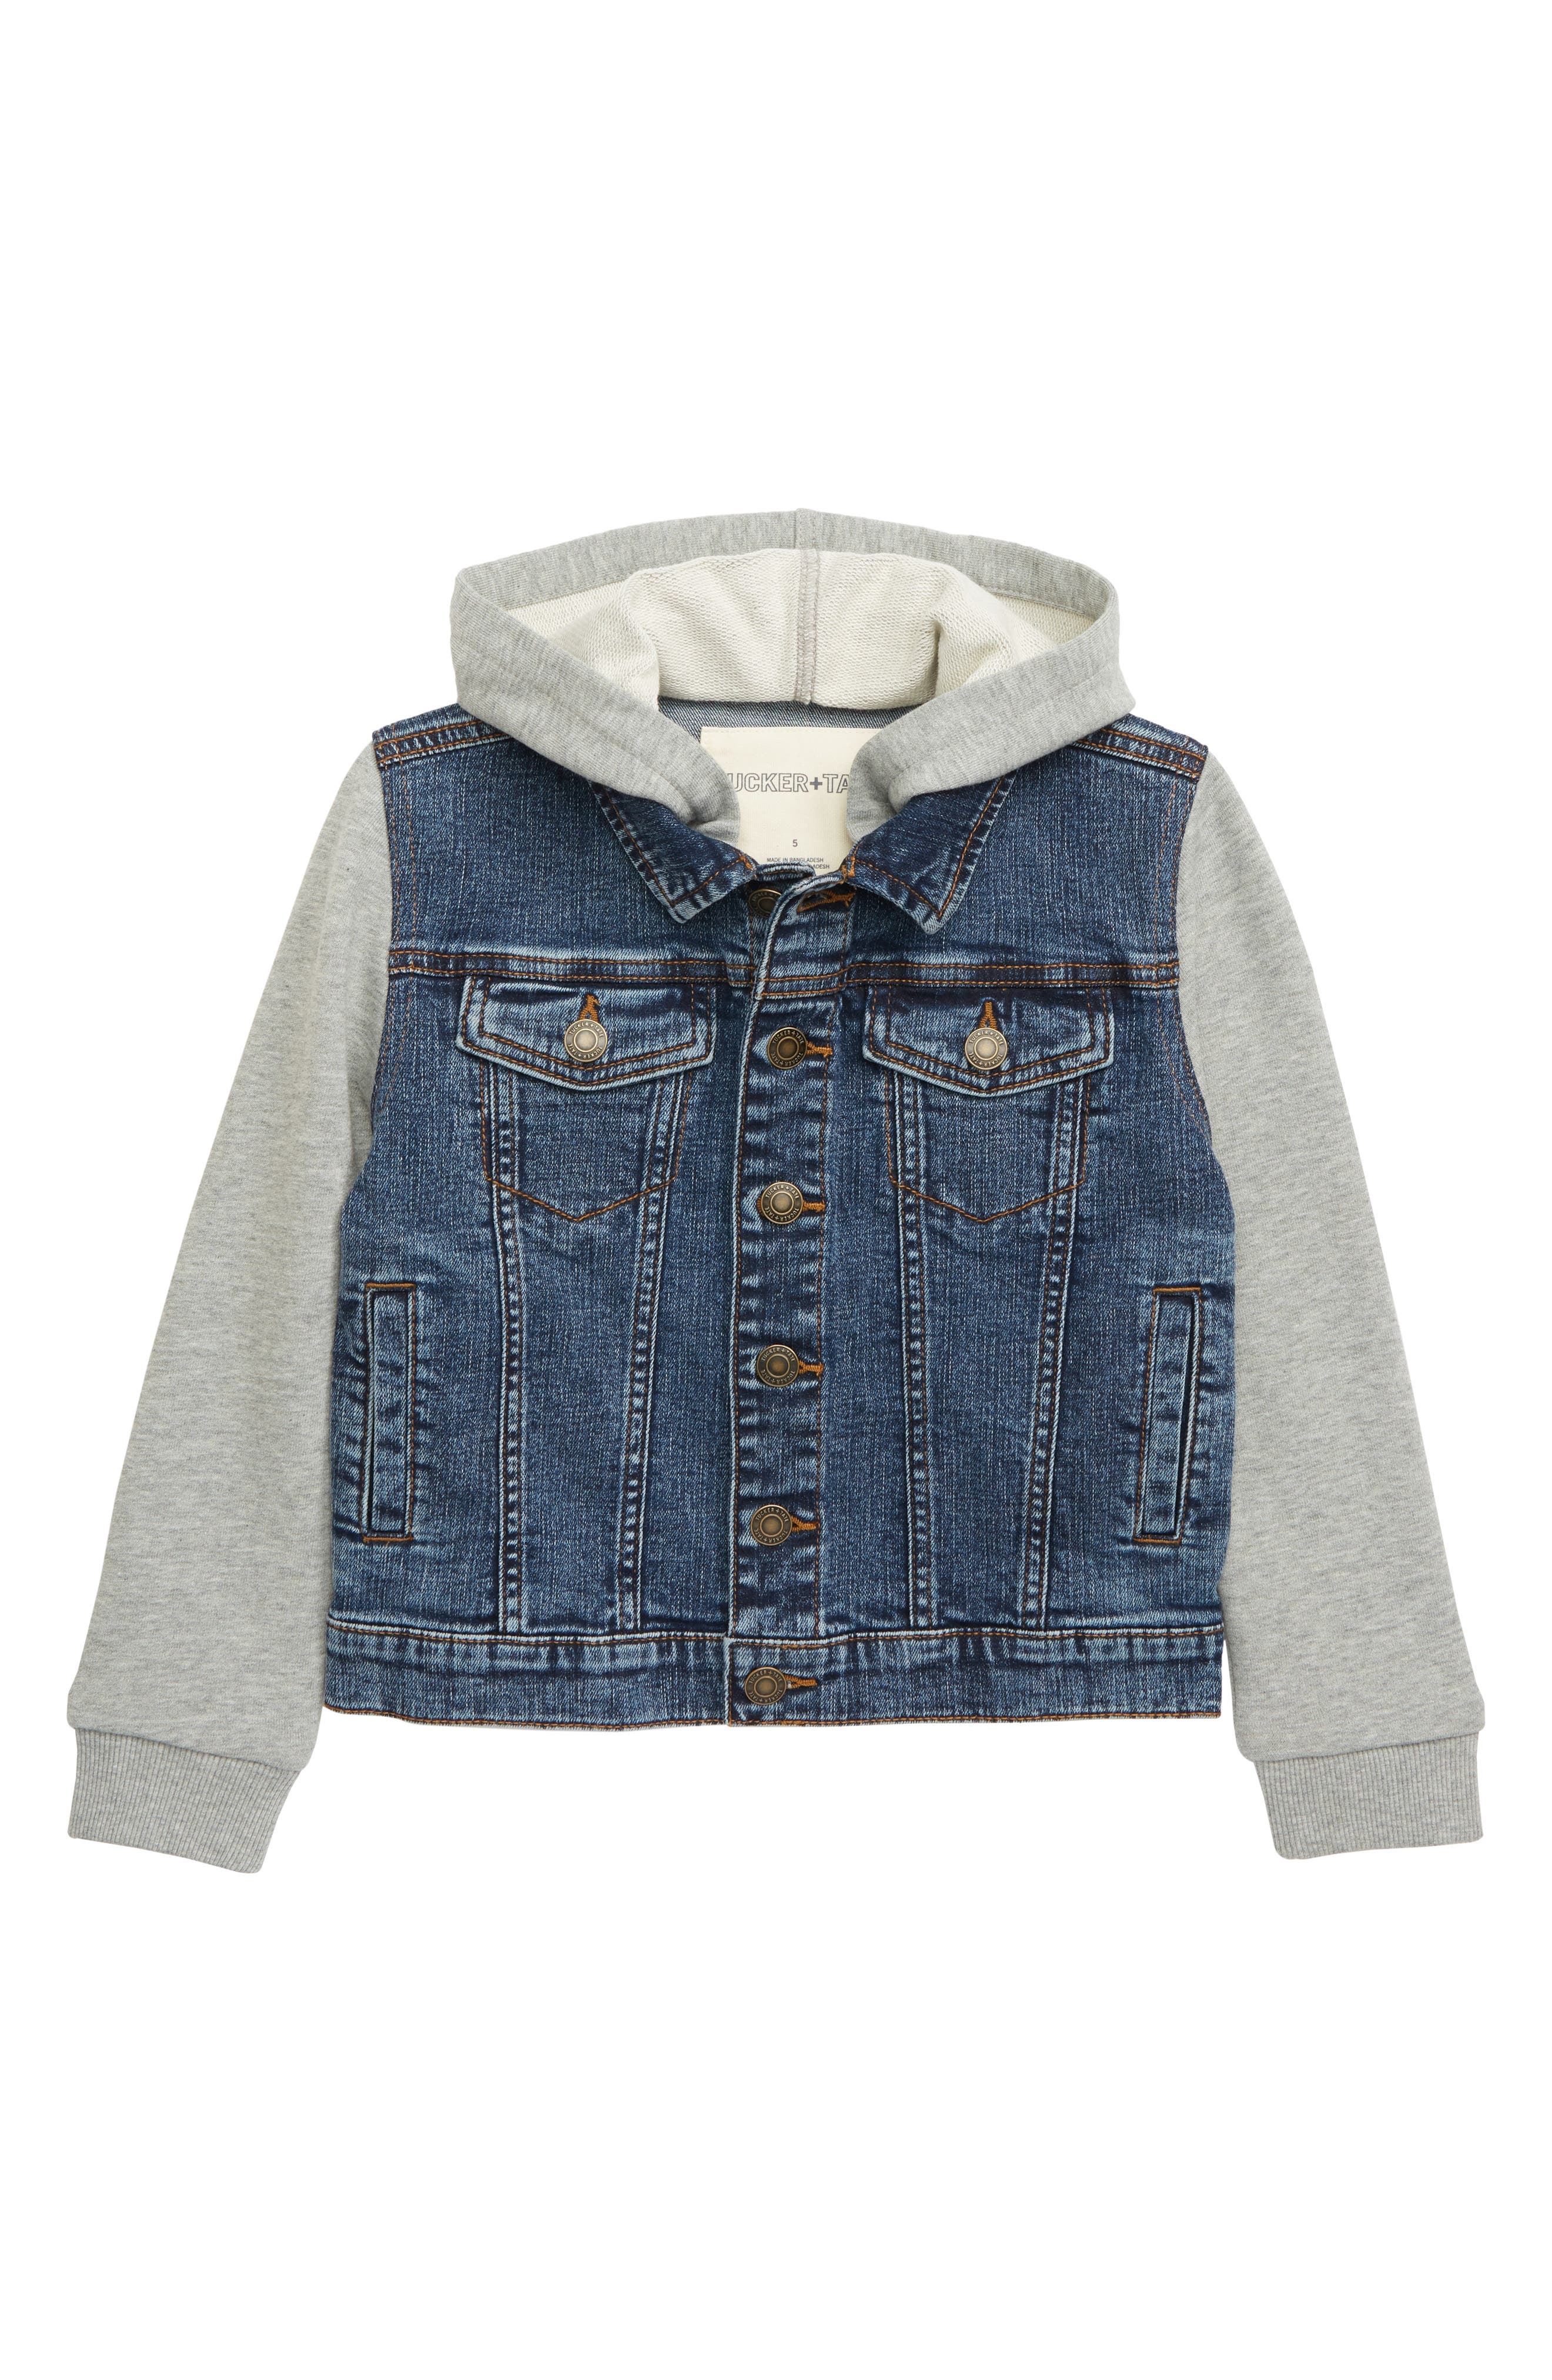 Toddler Boys Tucker  Tate Hooded Denim Jacket Size 2T  Blue